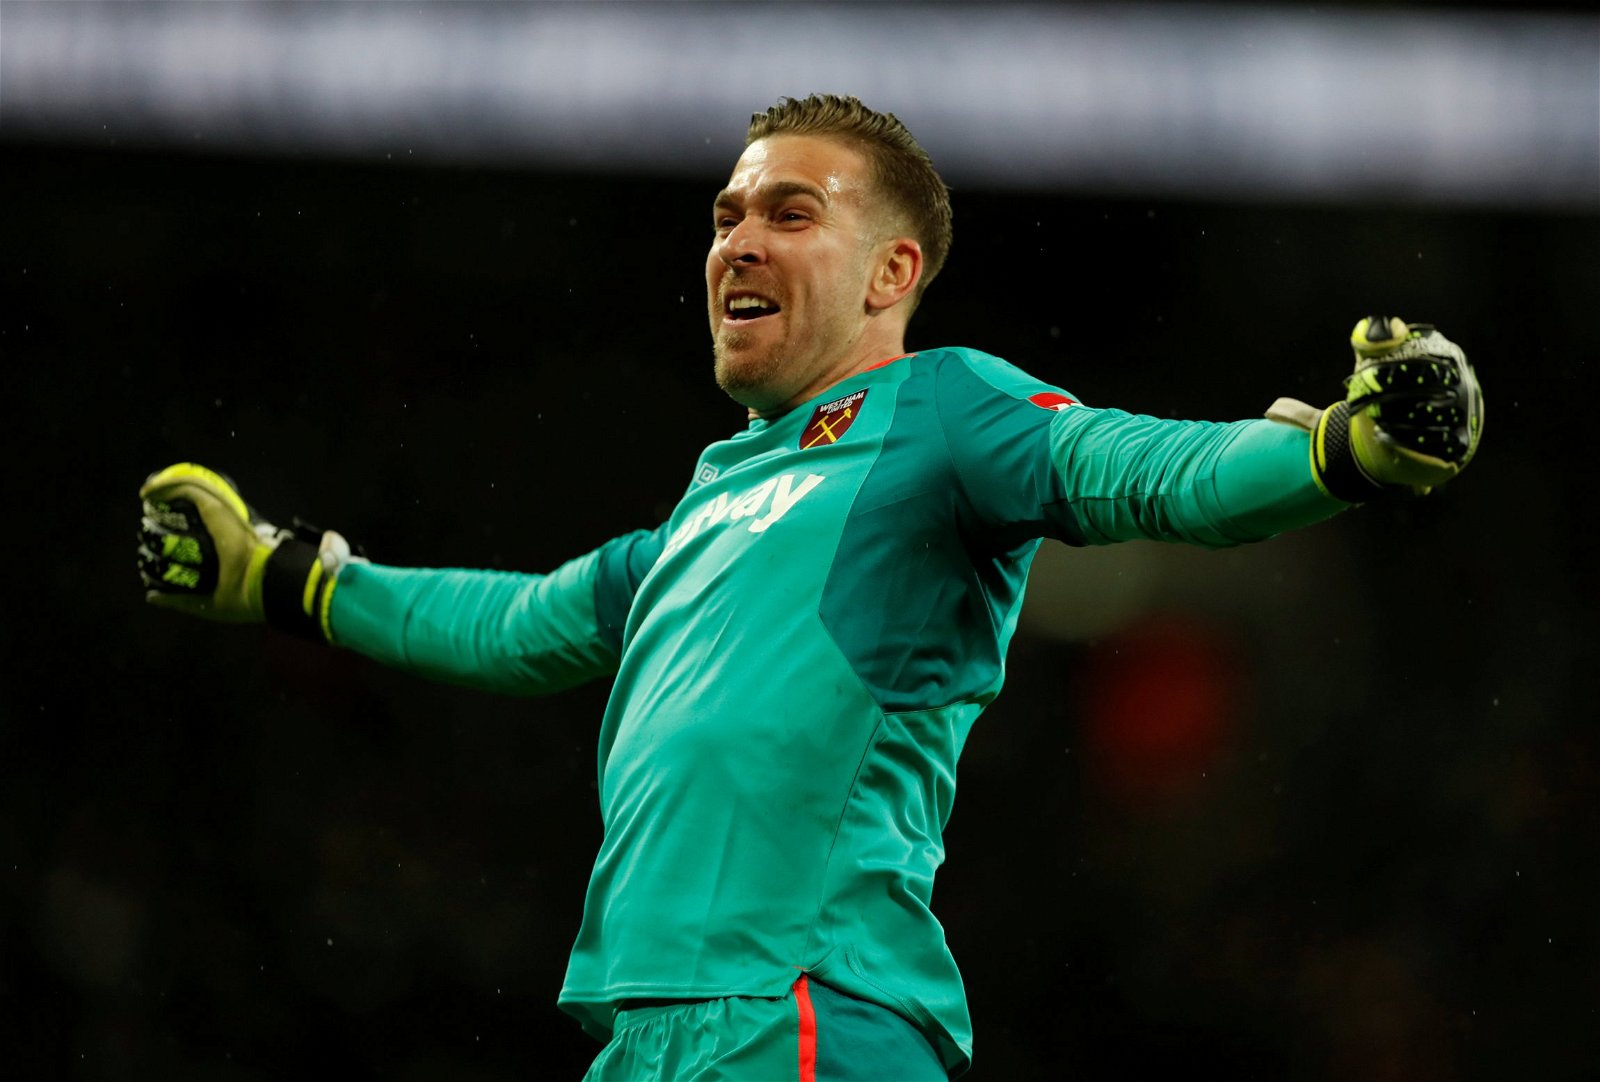 Adrian celebrates with fans